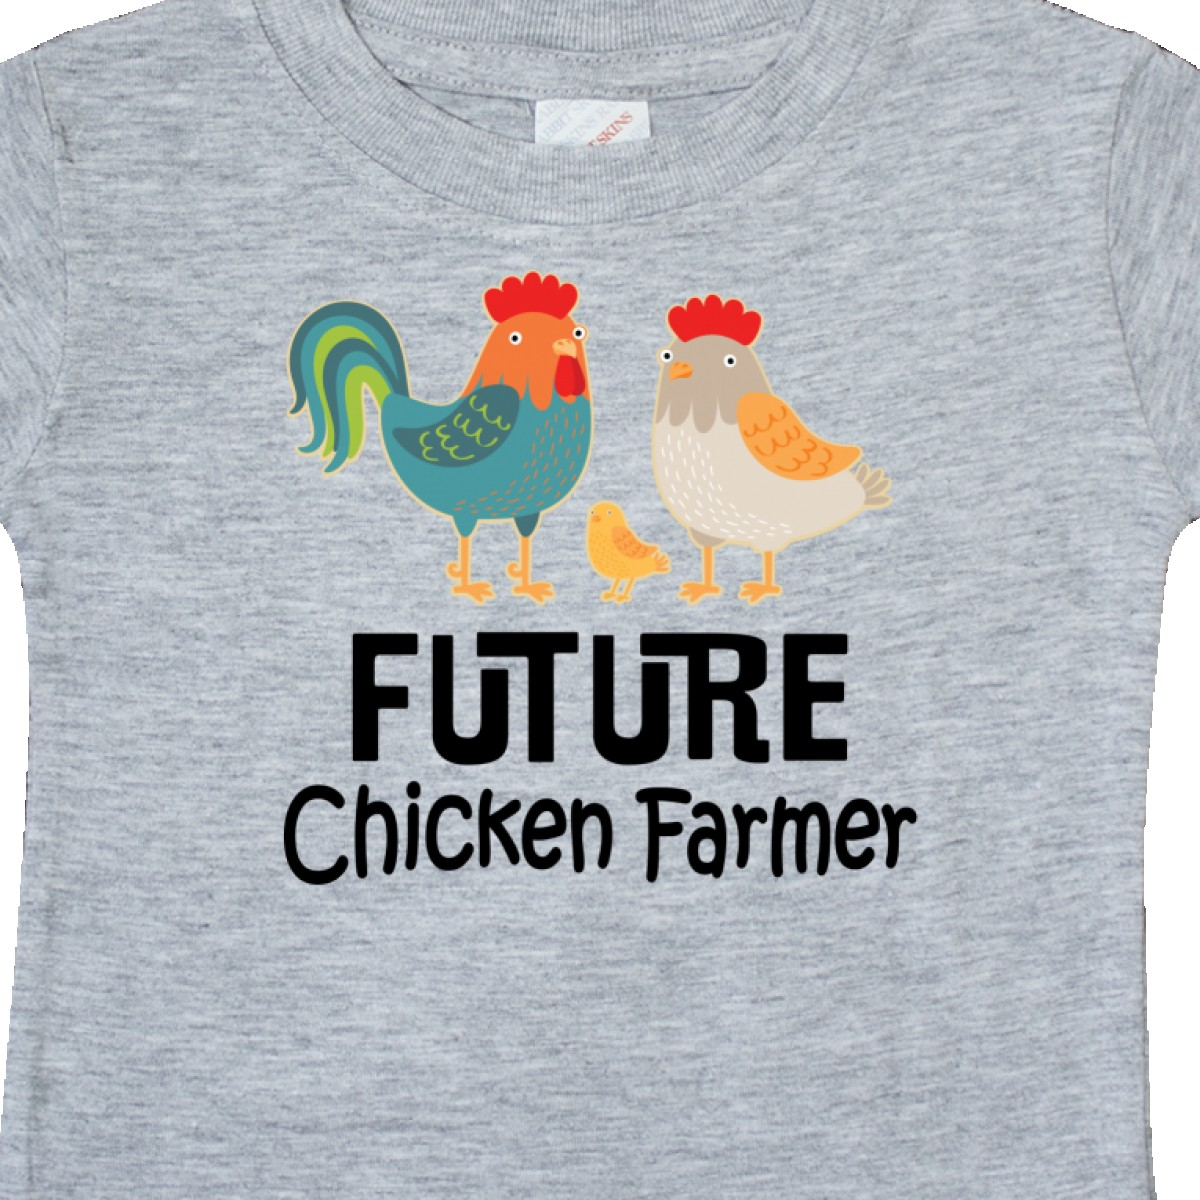 Inktastic-Future-Chicken-Farmer-Childs-Baby-T-Shirt-Lover-Animals-Cute-Pets-Tees thumbnail 4